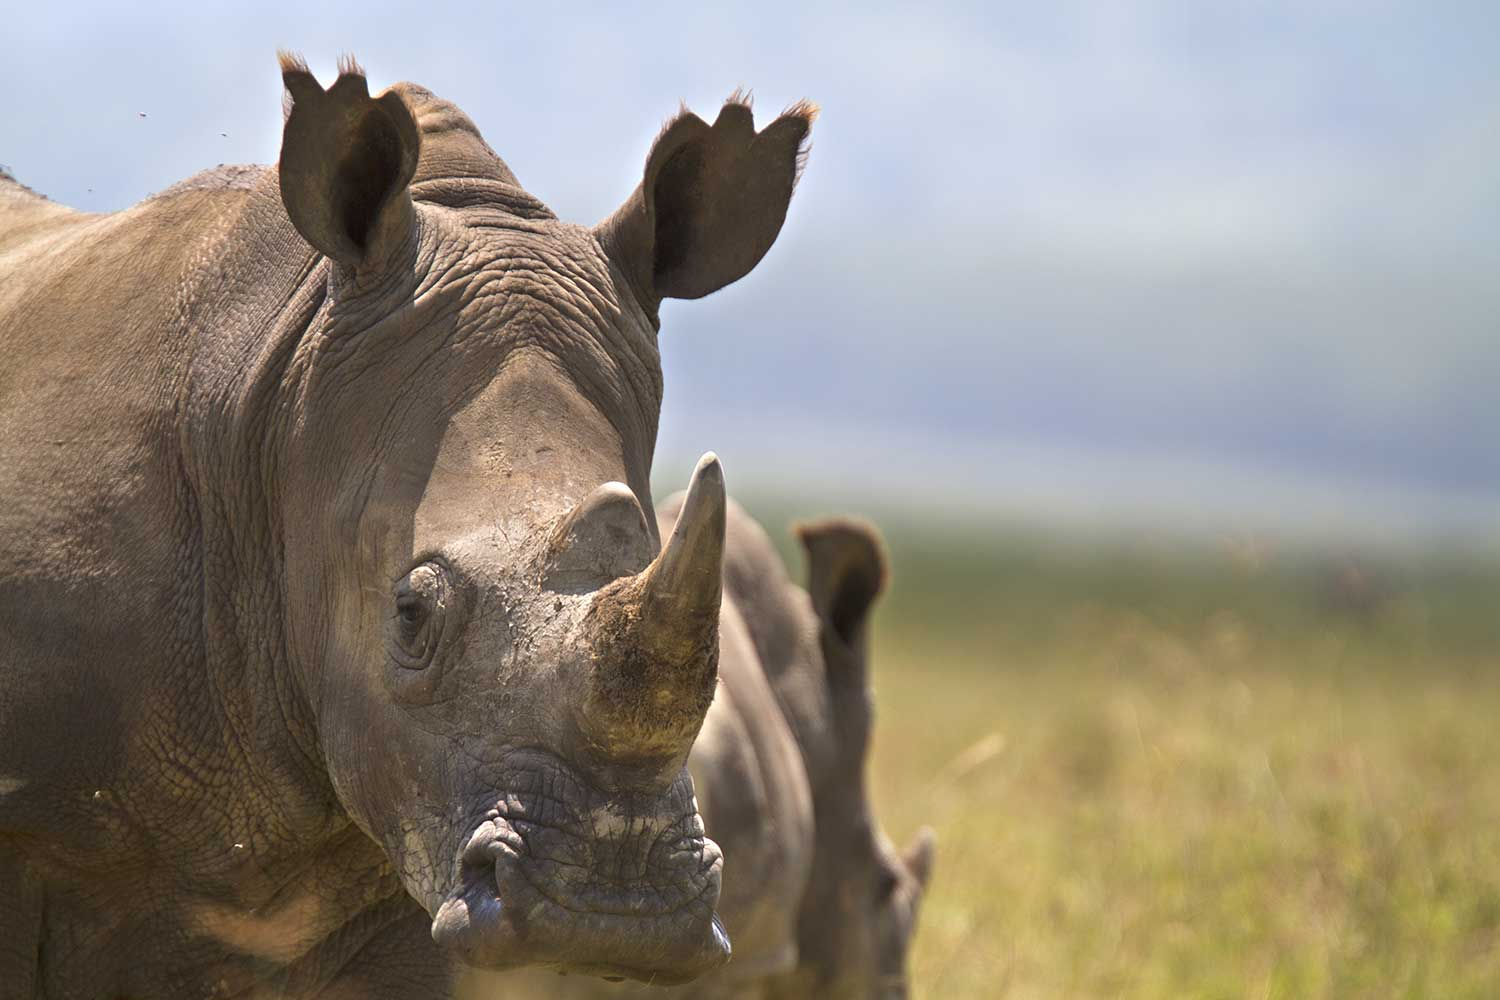 Additional funds pledged to conservation